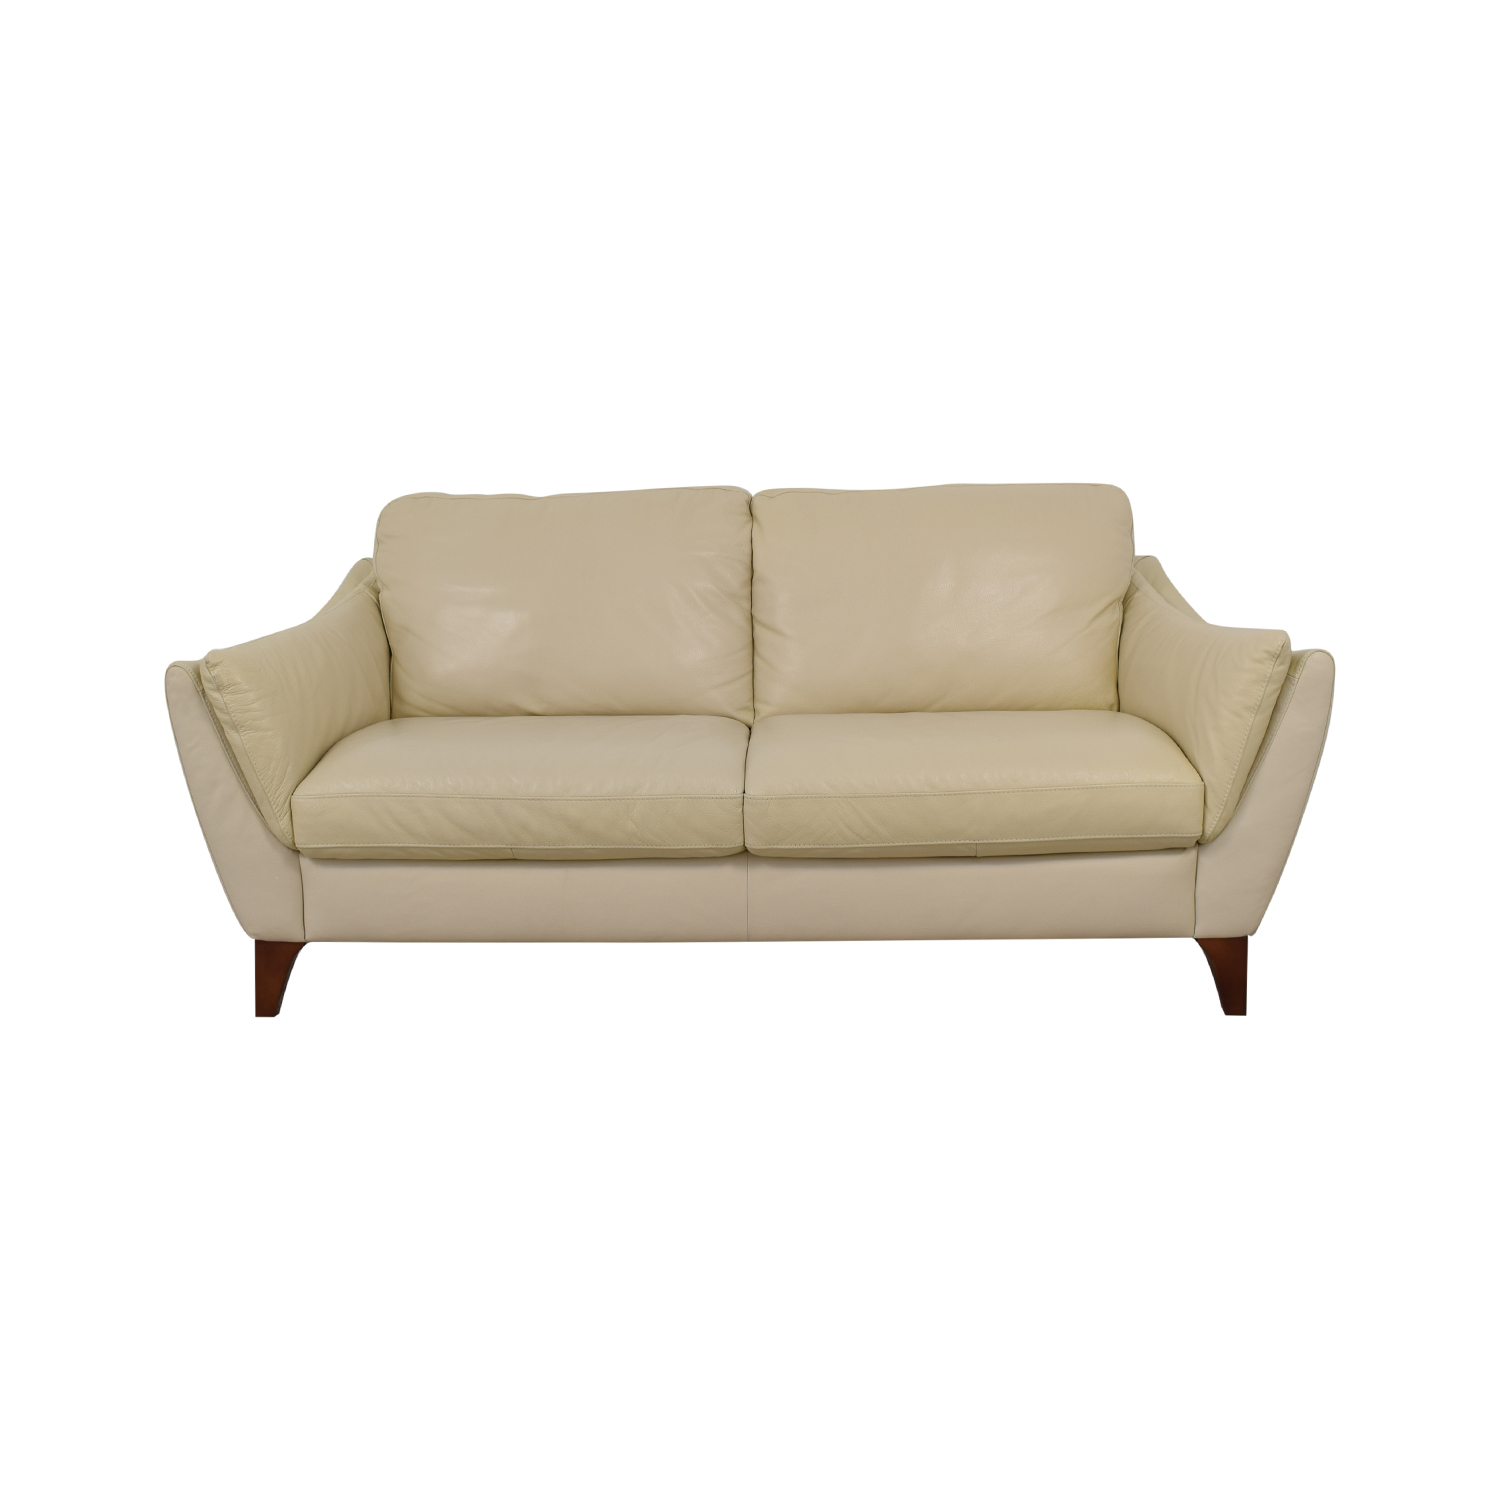 Excellent 87 Off Natuzzi Natuzzi Greccio Beige Leather Two Cushion Sofa Sofas Caraccident5 Cool Chair Designs And Ideas Caraccident5Info